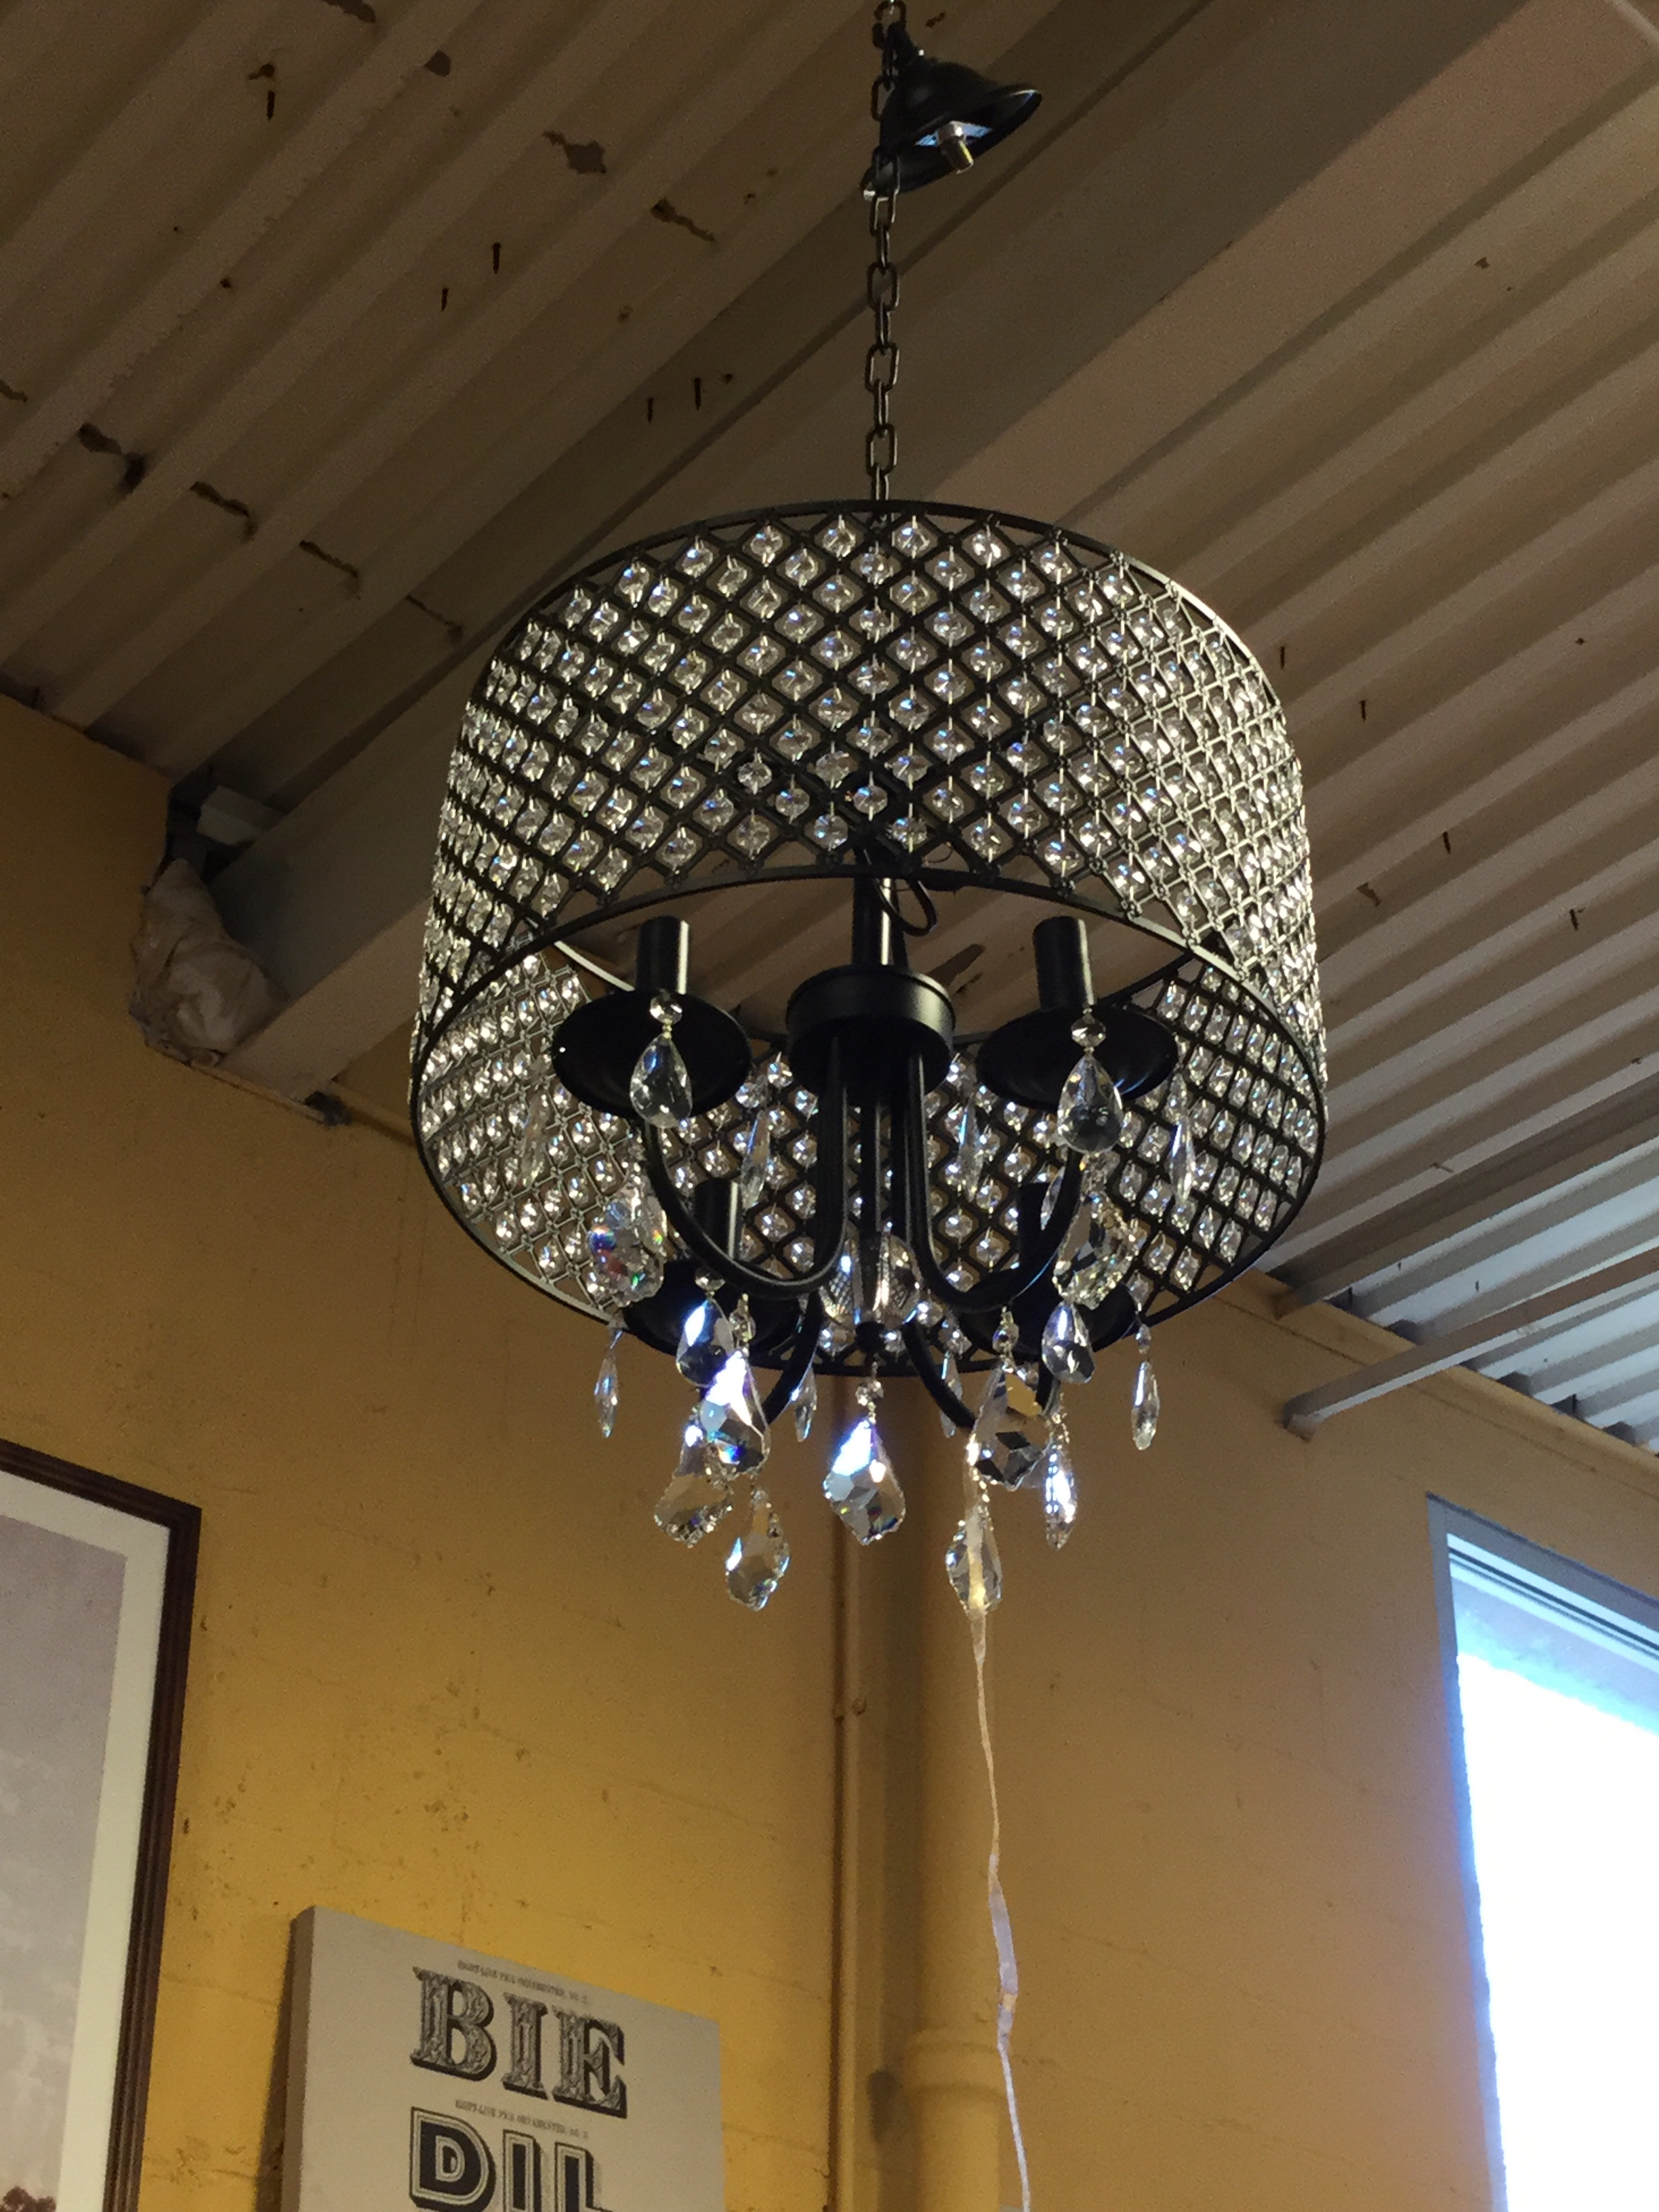 Black-Metal-and-Crystal-Light-Fixture_93090A.jpg